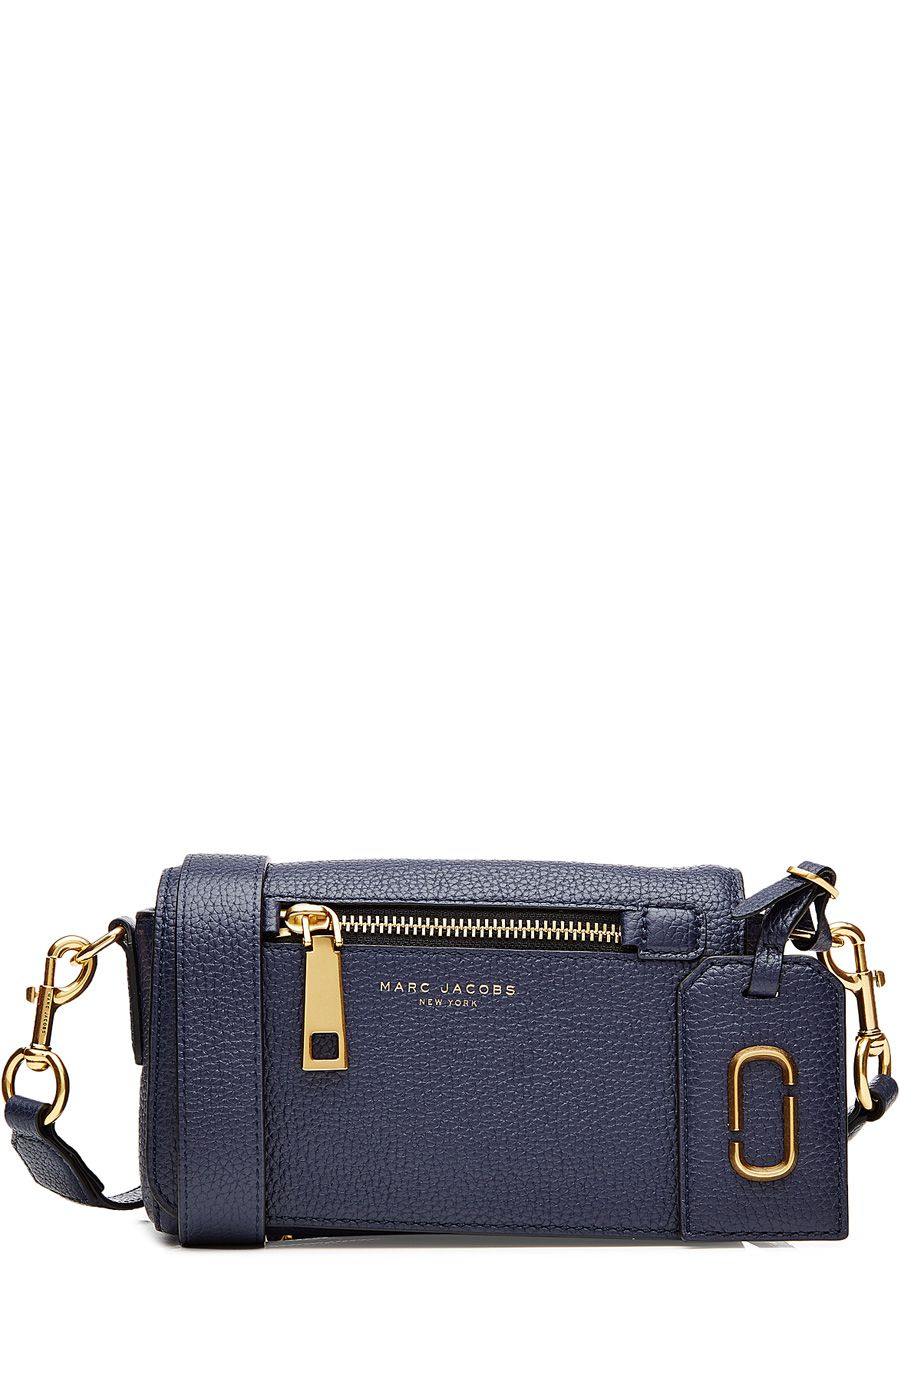 MARC JACOBS Gotham City Leather Cross Body Bag.  marcjacobs  bags  shoulder  bags  leather  denim  lining   a4955b6092fd